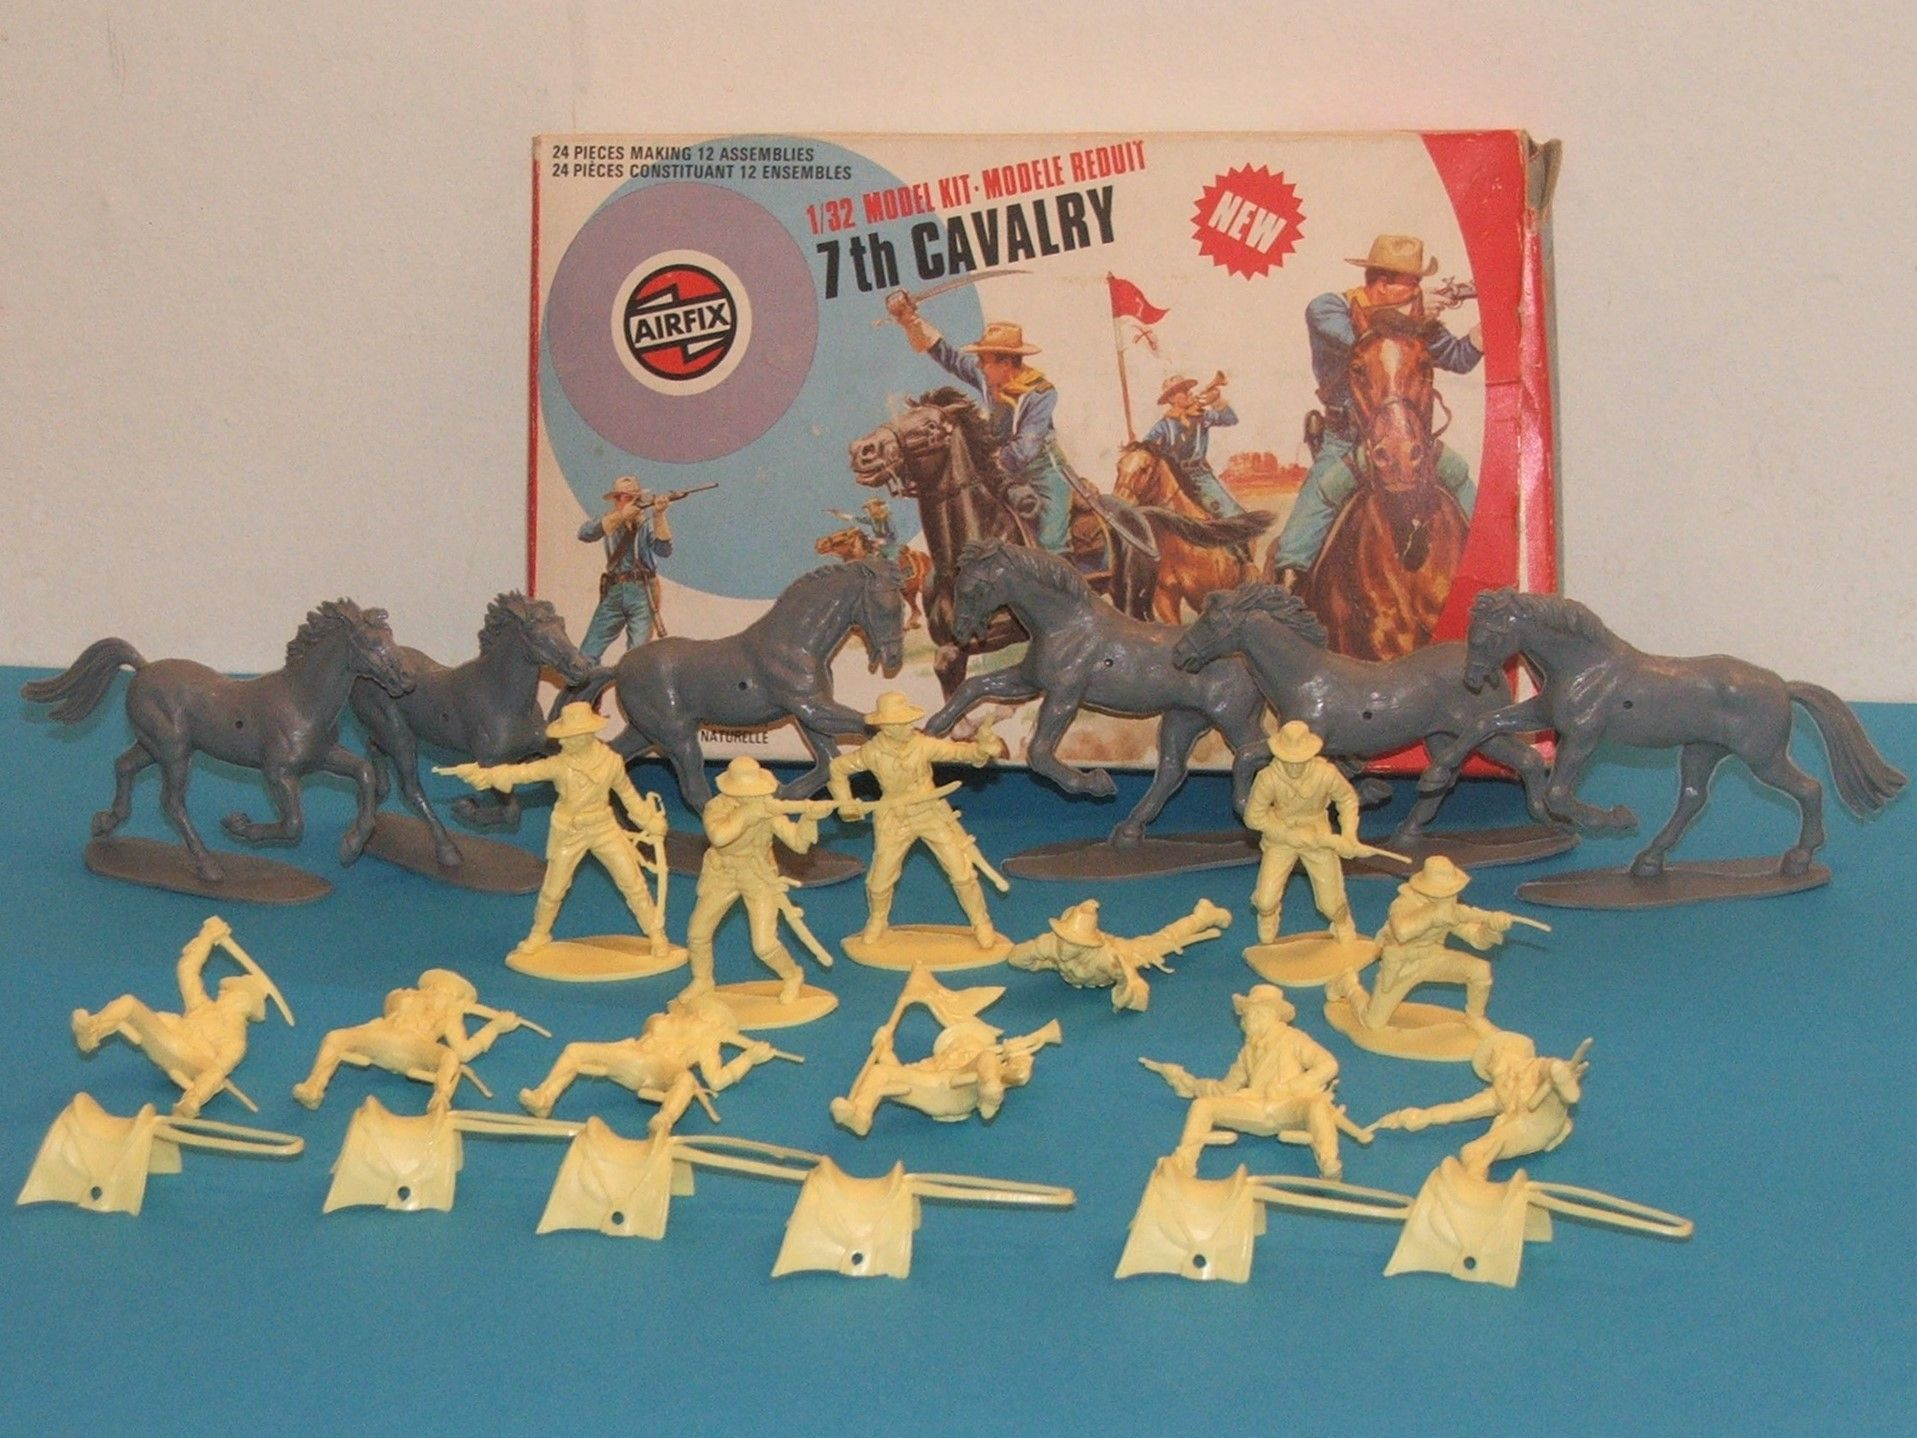 Airfix 7th Cavalry 1 32 Scale 1974